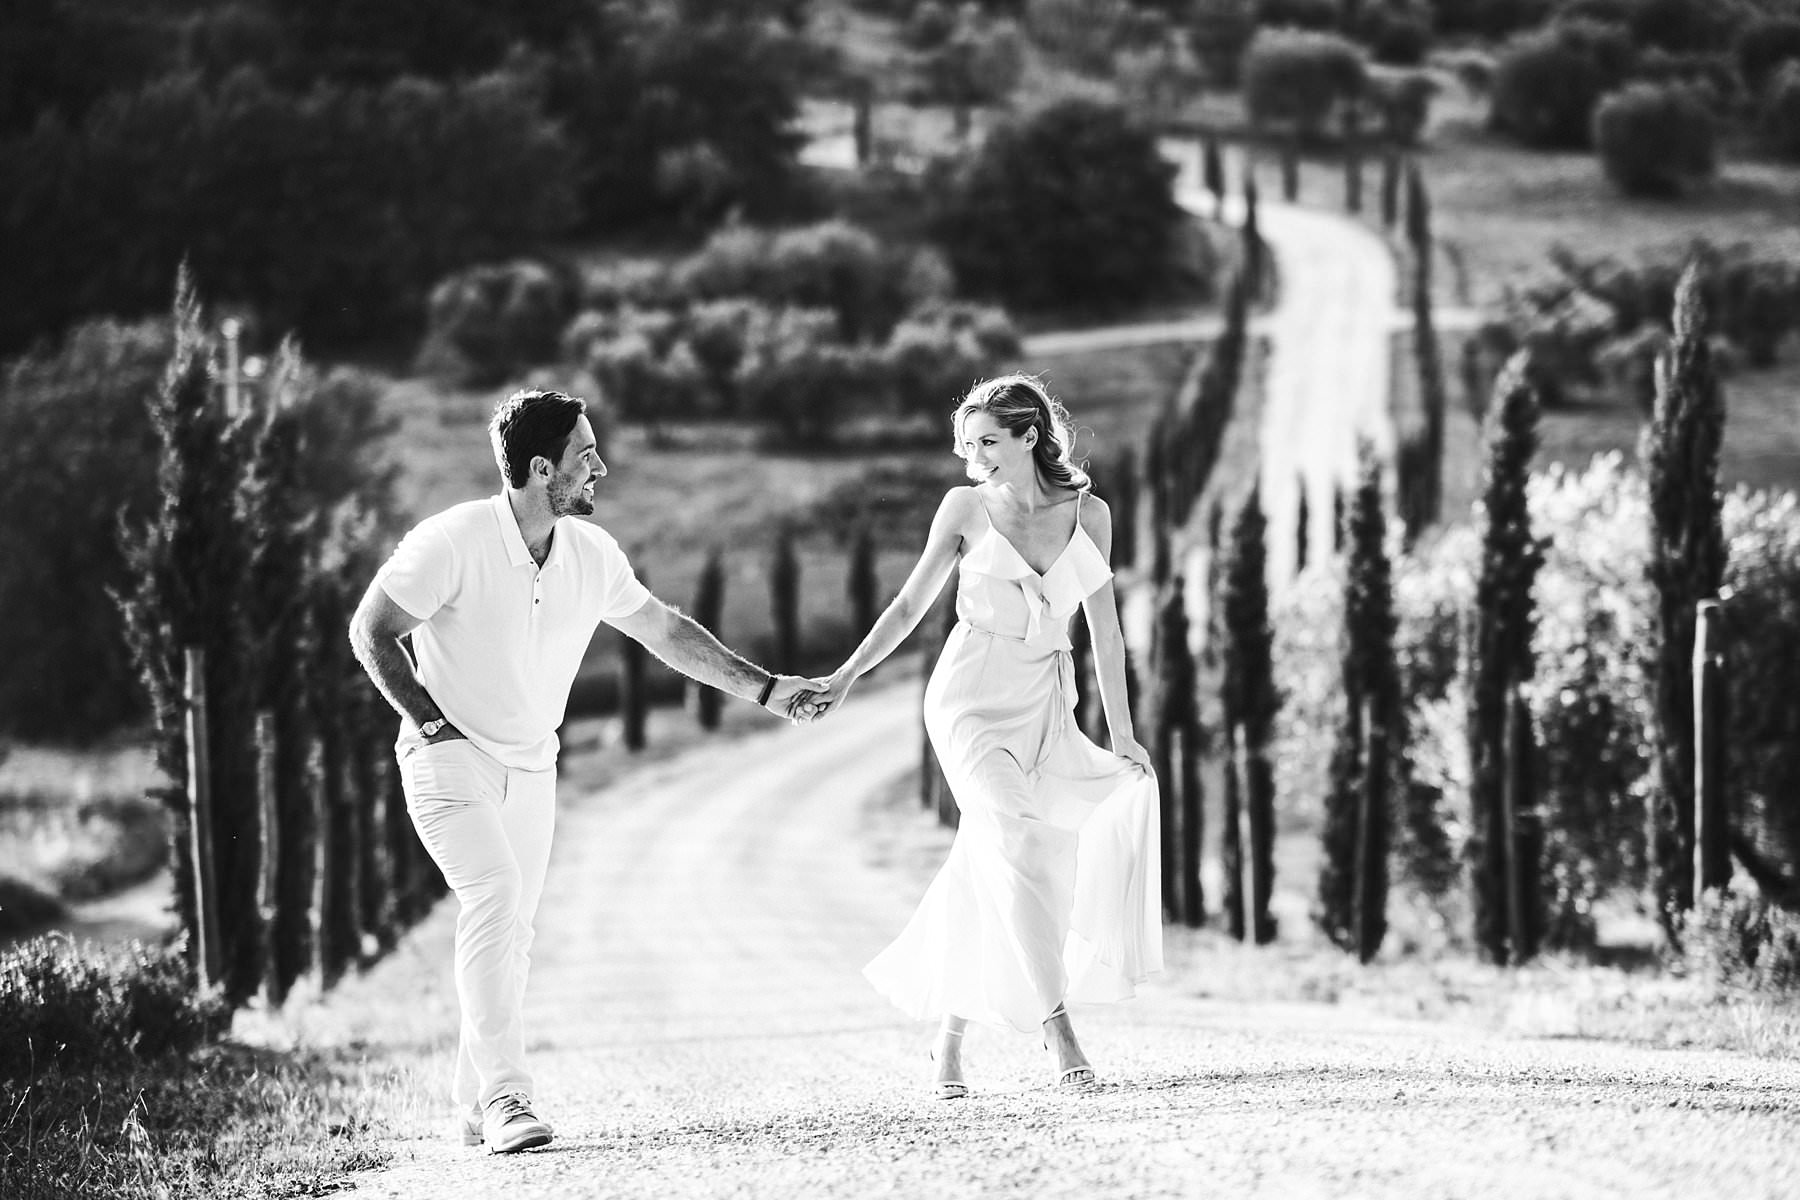 Breathtaking elopement wedding couple photo shoot in Tuscany countryside of Val D'Orcia near Pienza